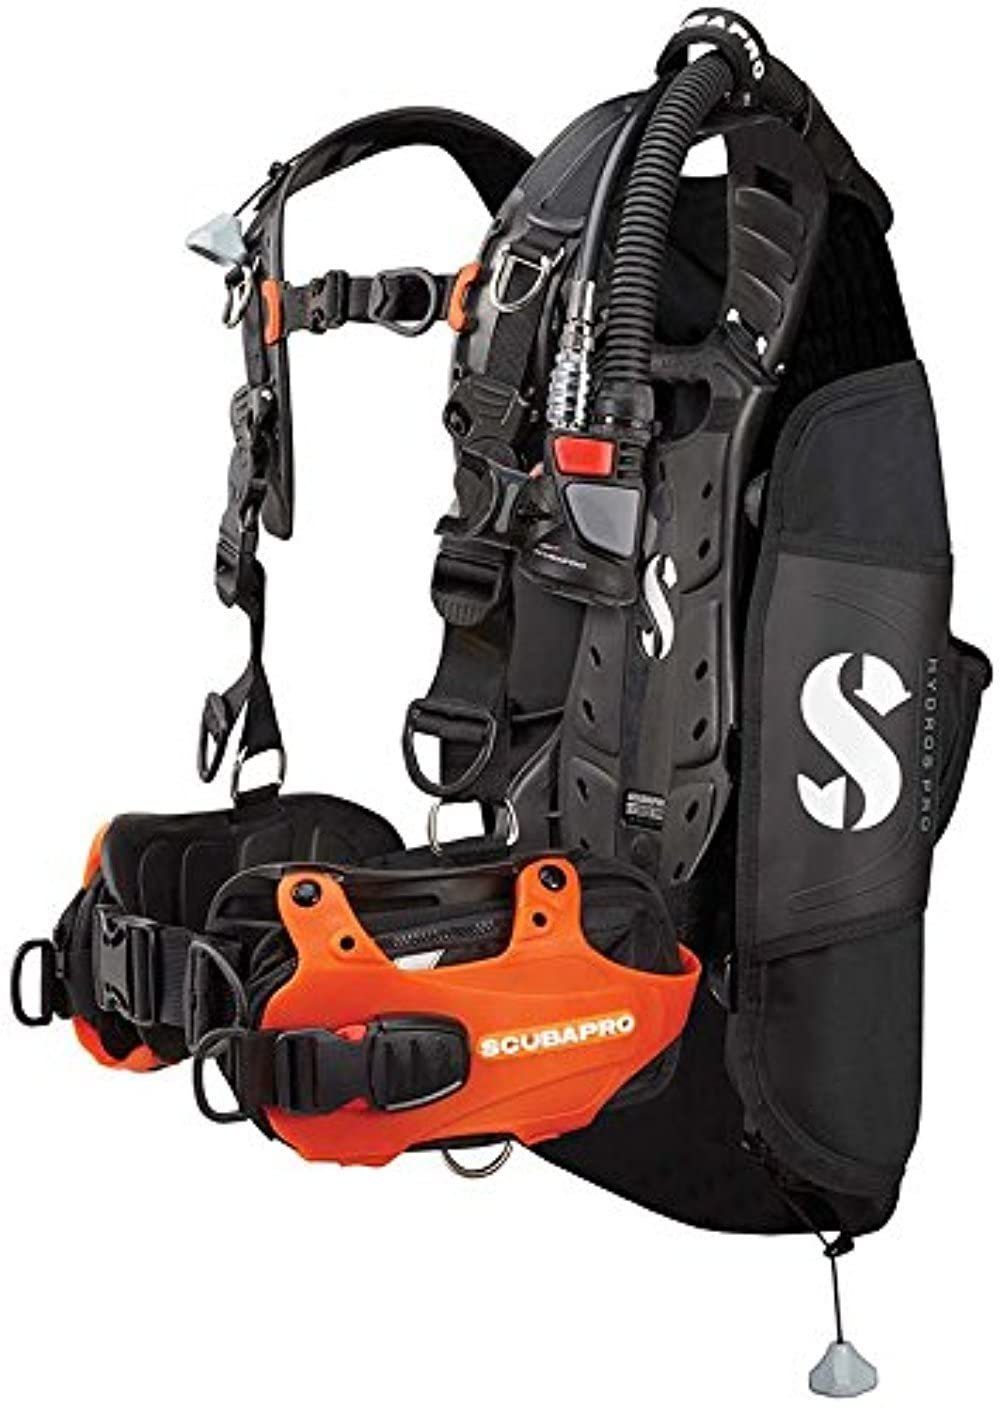 Scubapro Hydros Pro w/Balanced Inflator BCD-Orange-Small